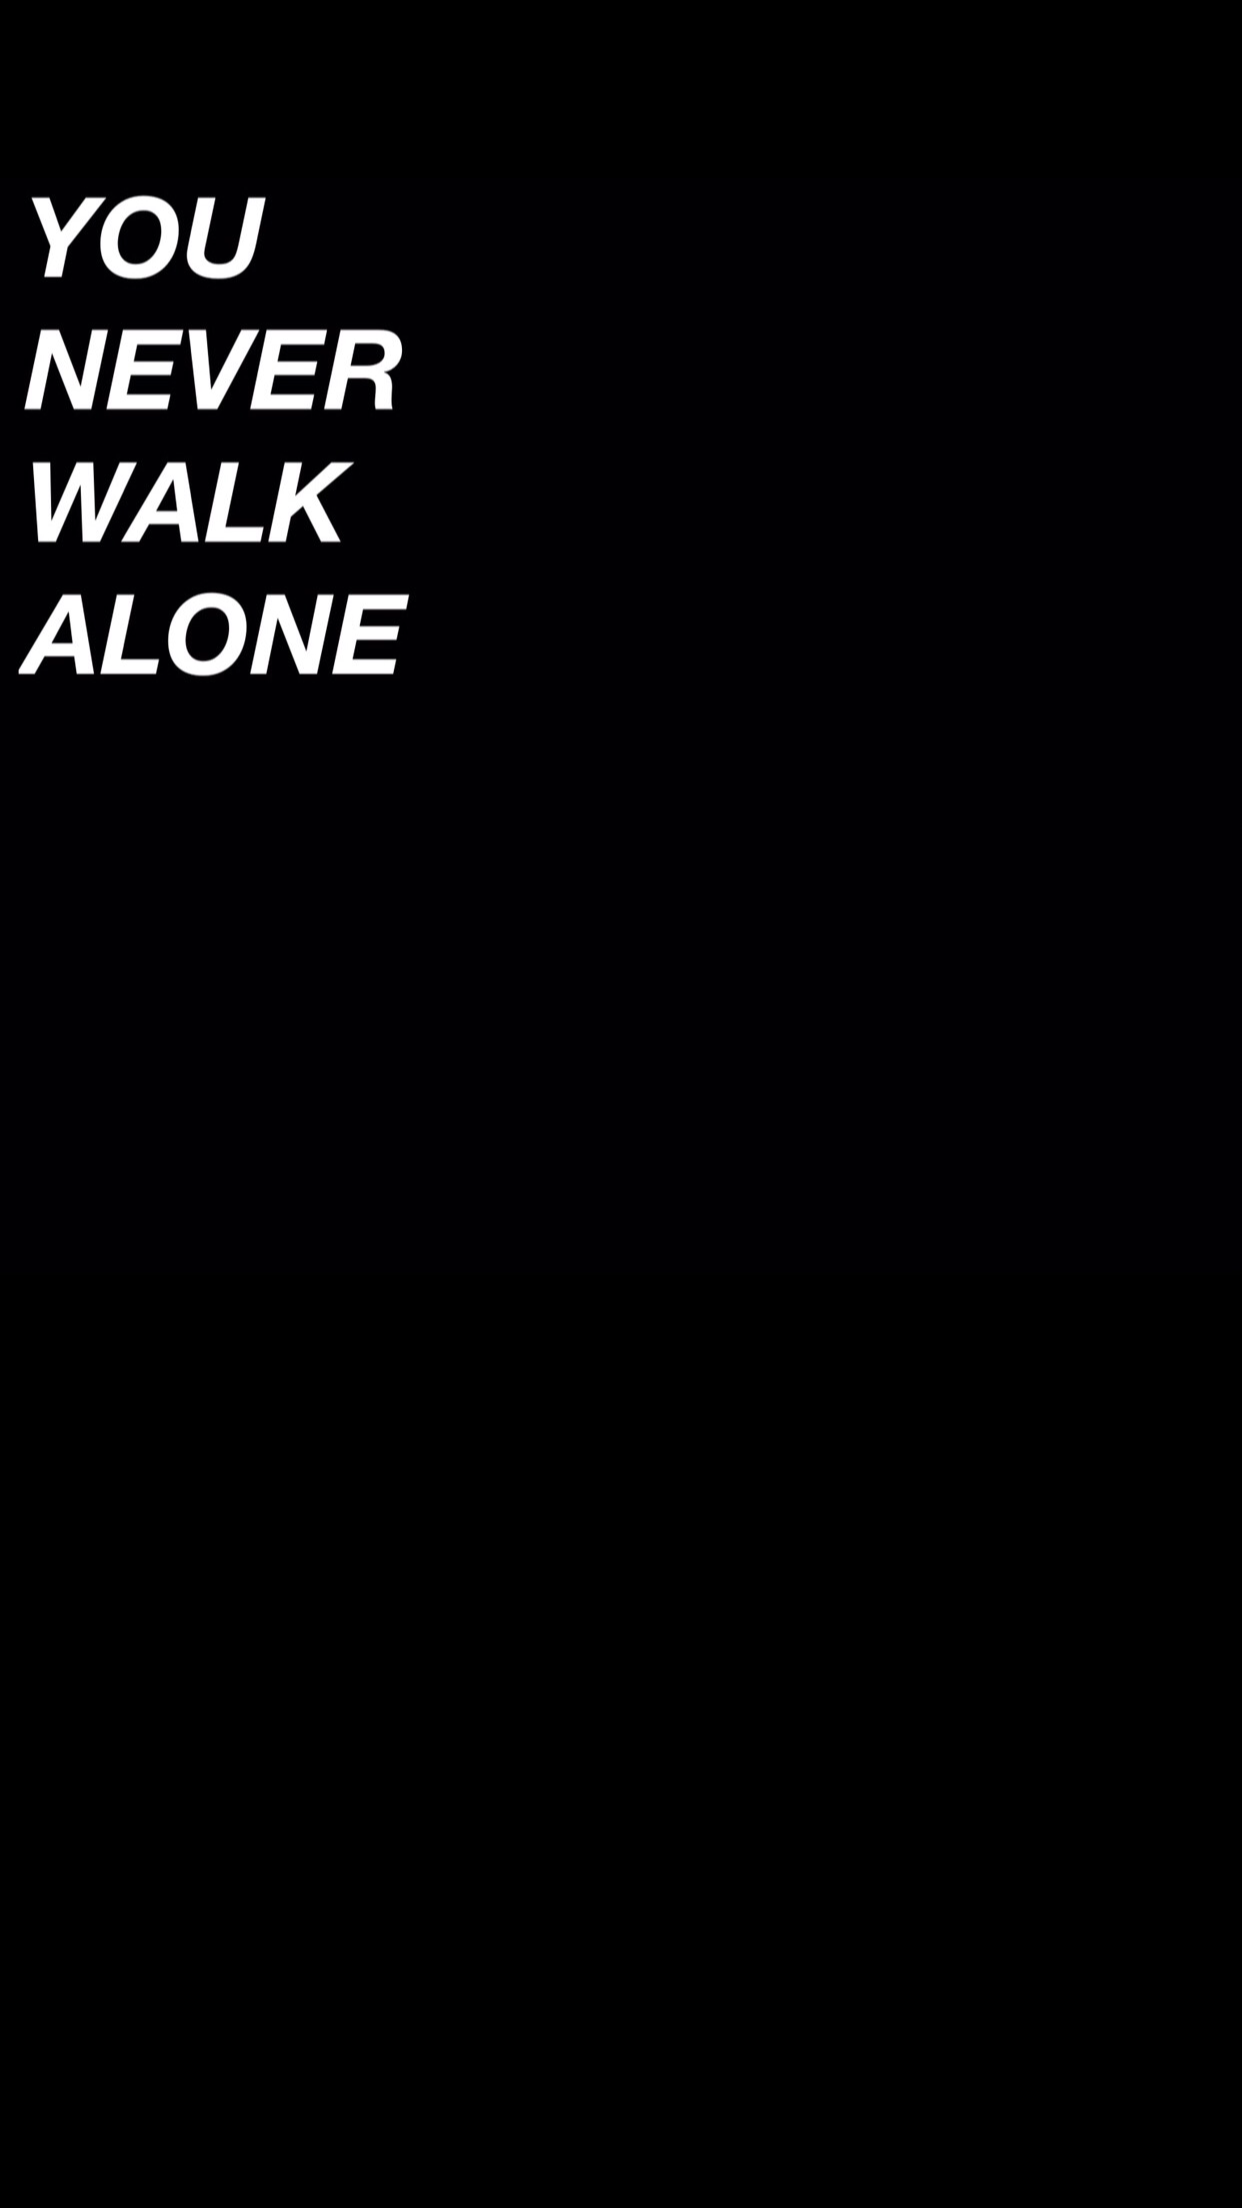 Walk Alone Wallpaper Posted By Zoey Tremblay